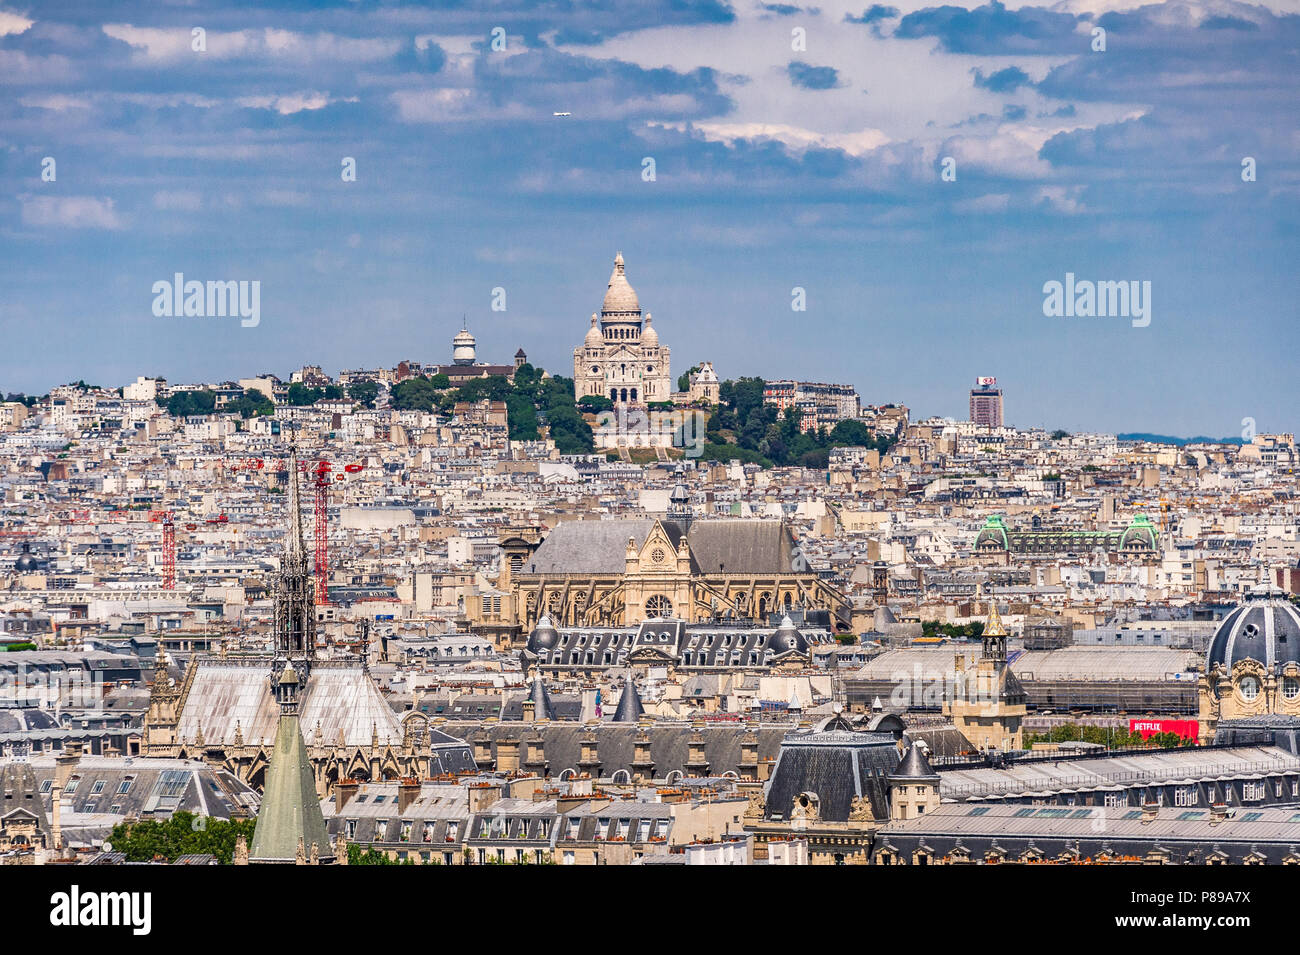 A view of butte Montmartre and Sacré Coeur from a view at the top of Pantheon in Paris, France - Stock Image